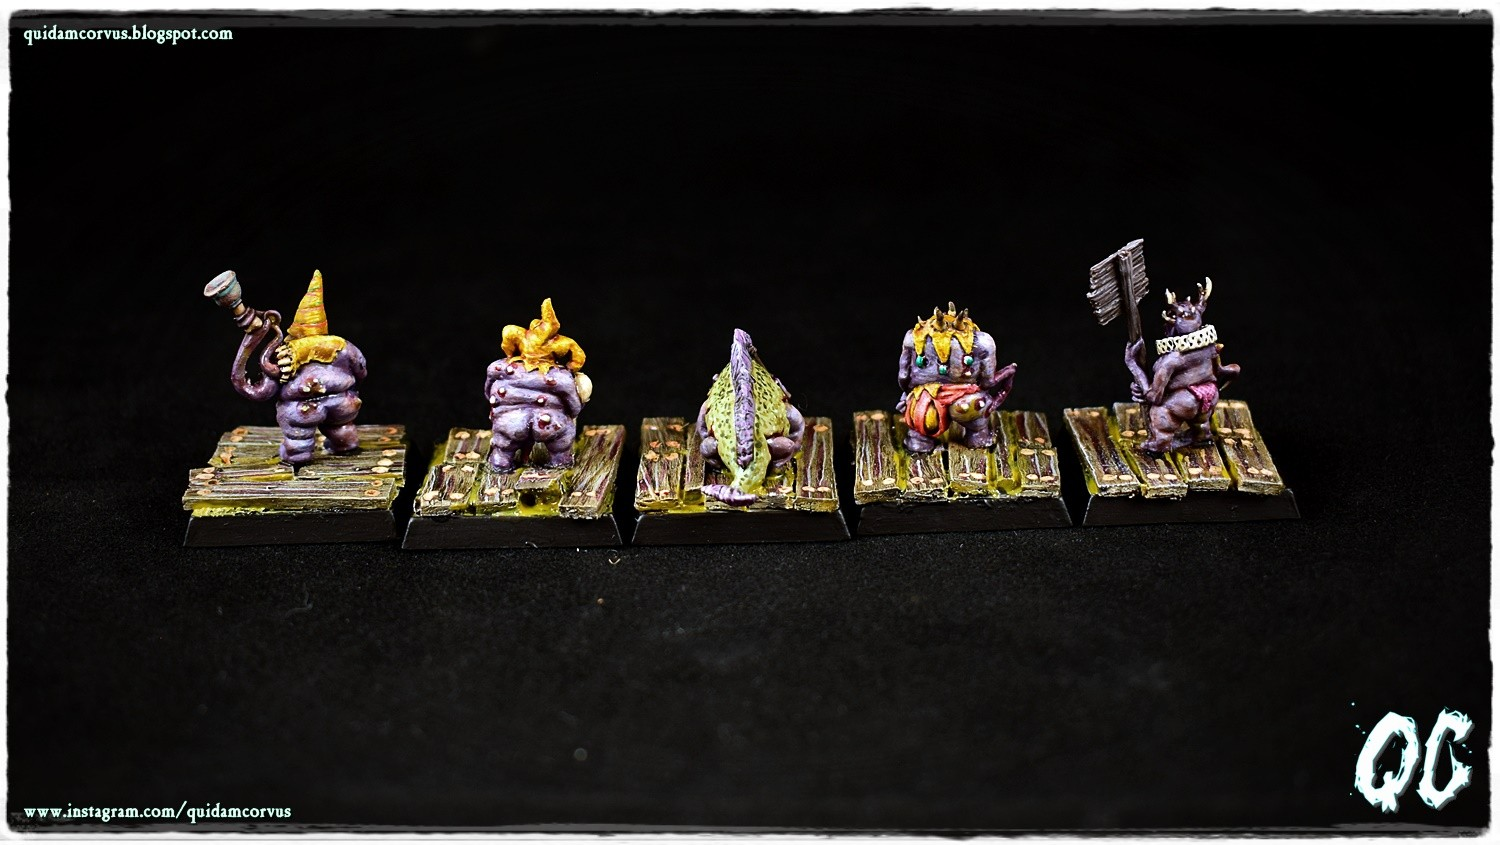 Gallery by qc (Part 2) - Page 29 6x3pxS